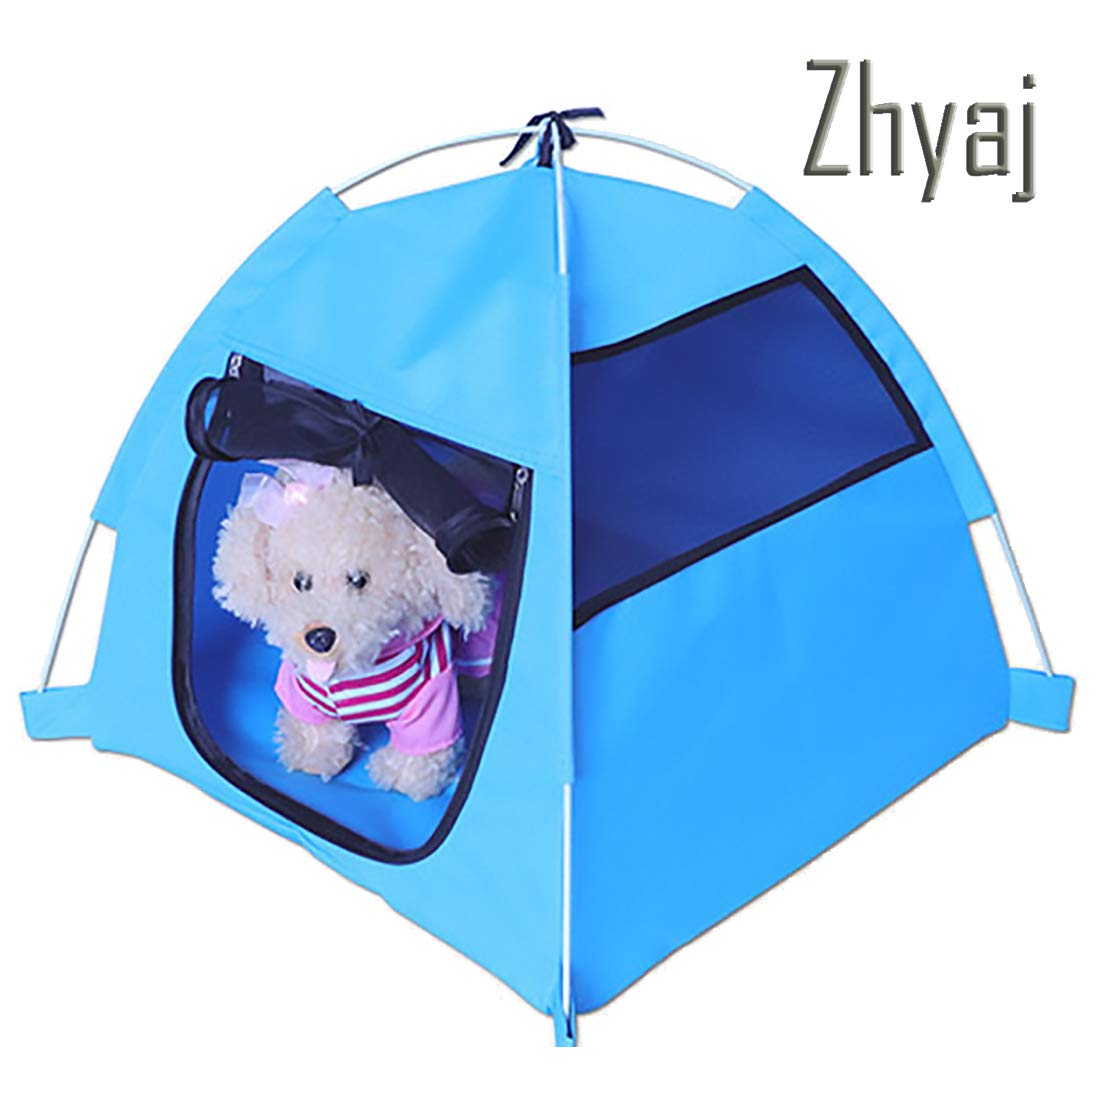 A Dog Kennel Outdoor, Dog Tent Foldable Puppy Cave Pet Tent House Puppy Cave Pet Sleeping Warm Bed Mat Outdoor Travel Nest House Dog Bed,A